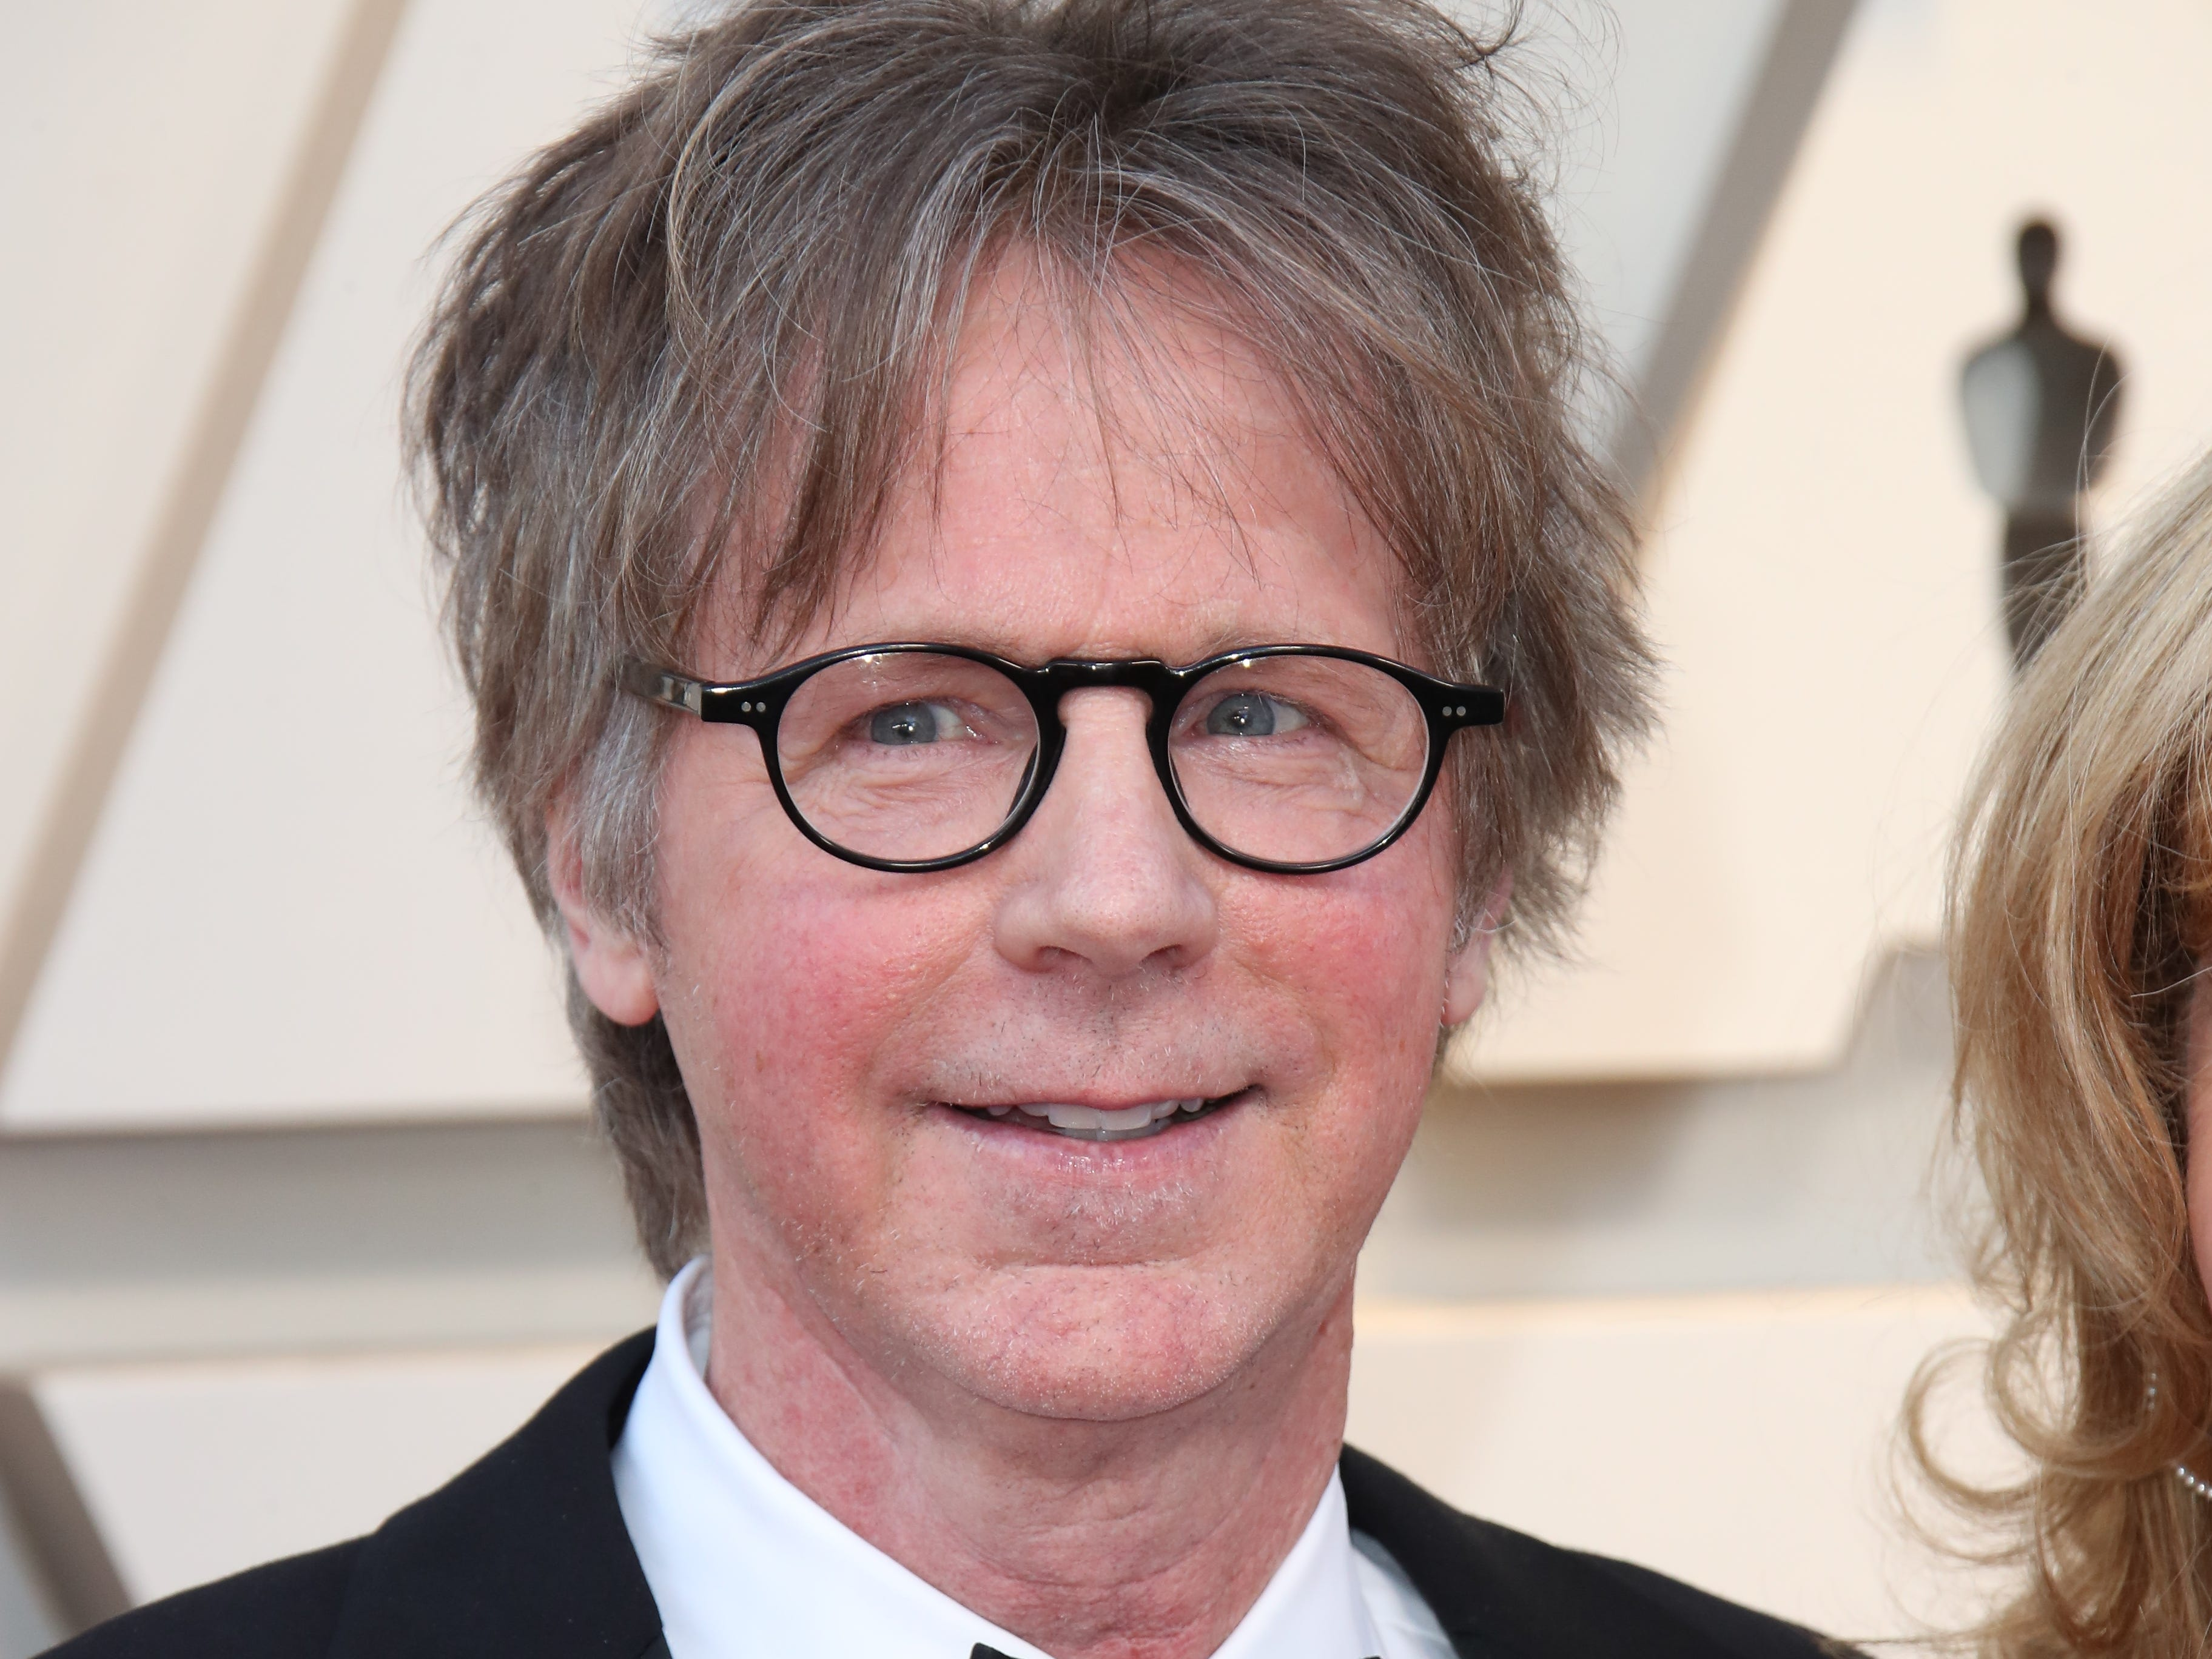 February 24, 2019; Los Angeles, CA, USA; Dana Carvey arrives at the 91st Academy Awards at the Dolby Theatre. Mandatory Credit: Dan MacMedan-USA TODAY NETWORK (Via OlyDrop)